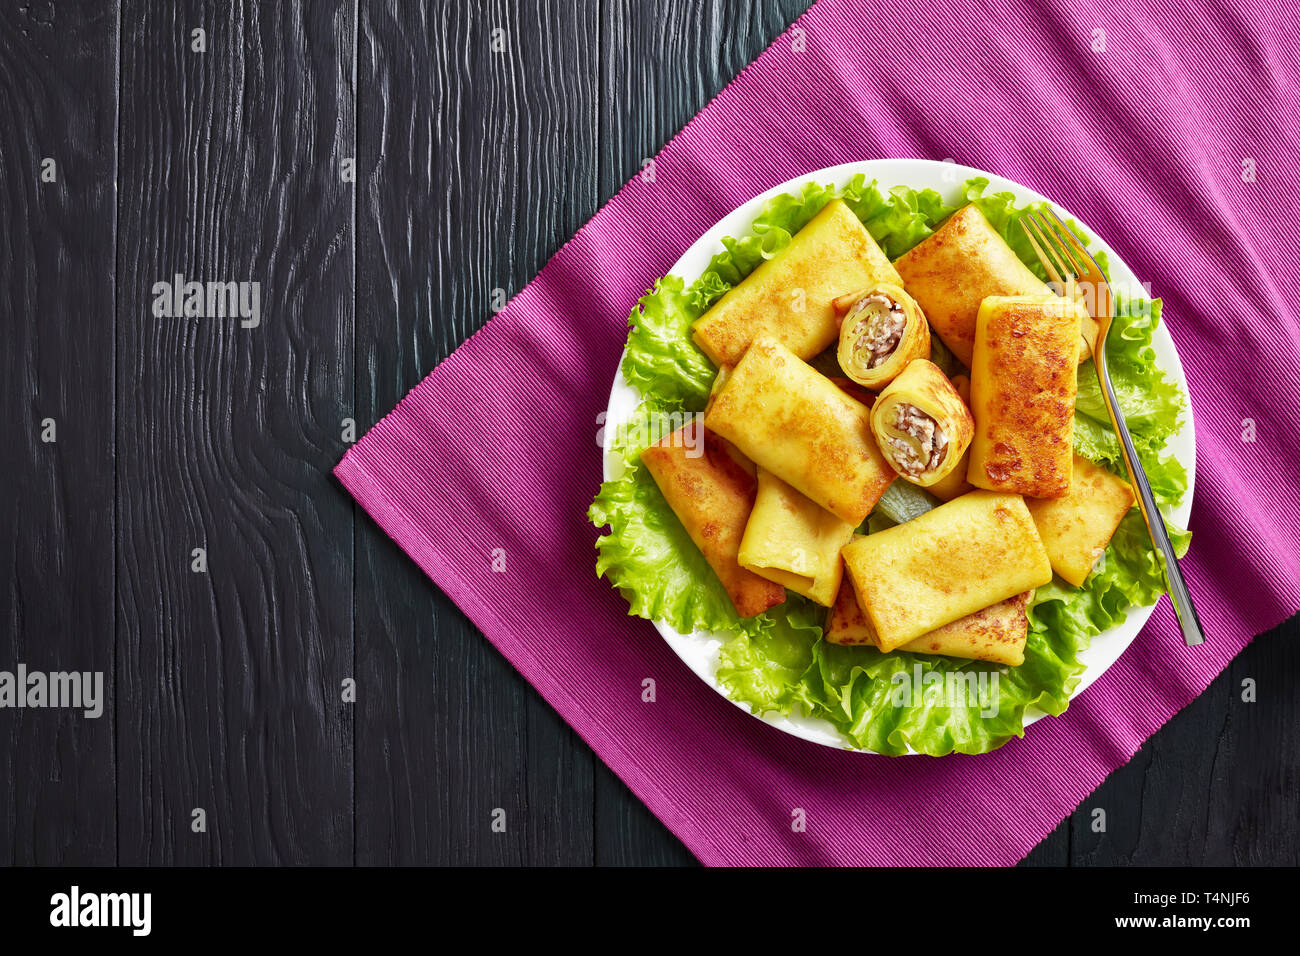 overhead view of Savory crepe rolls with ground chicken meat and champignon filling served on a bad of fresh lettuce leaves on a white plate on a blac - Stock Image